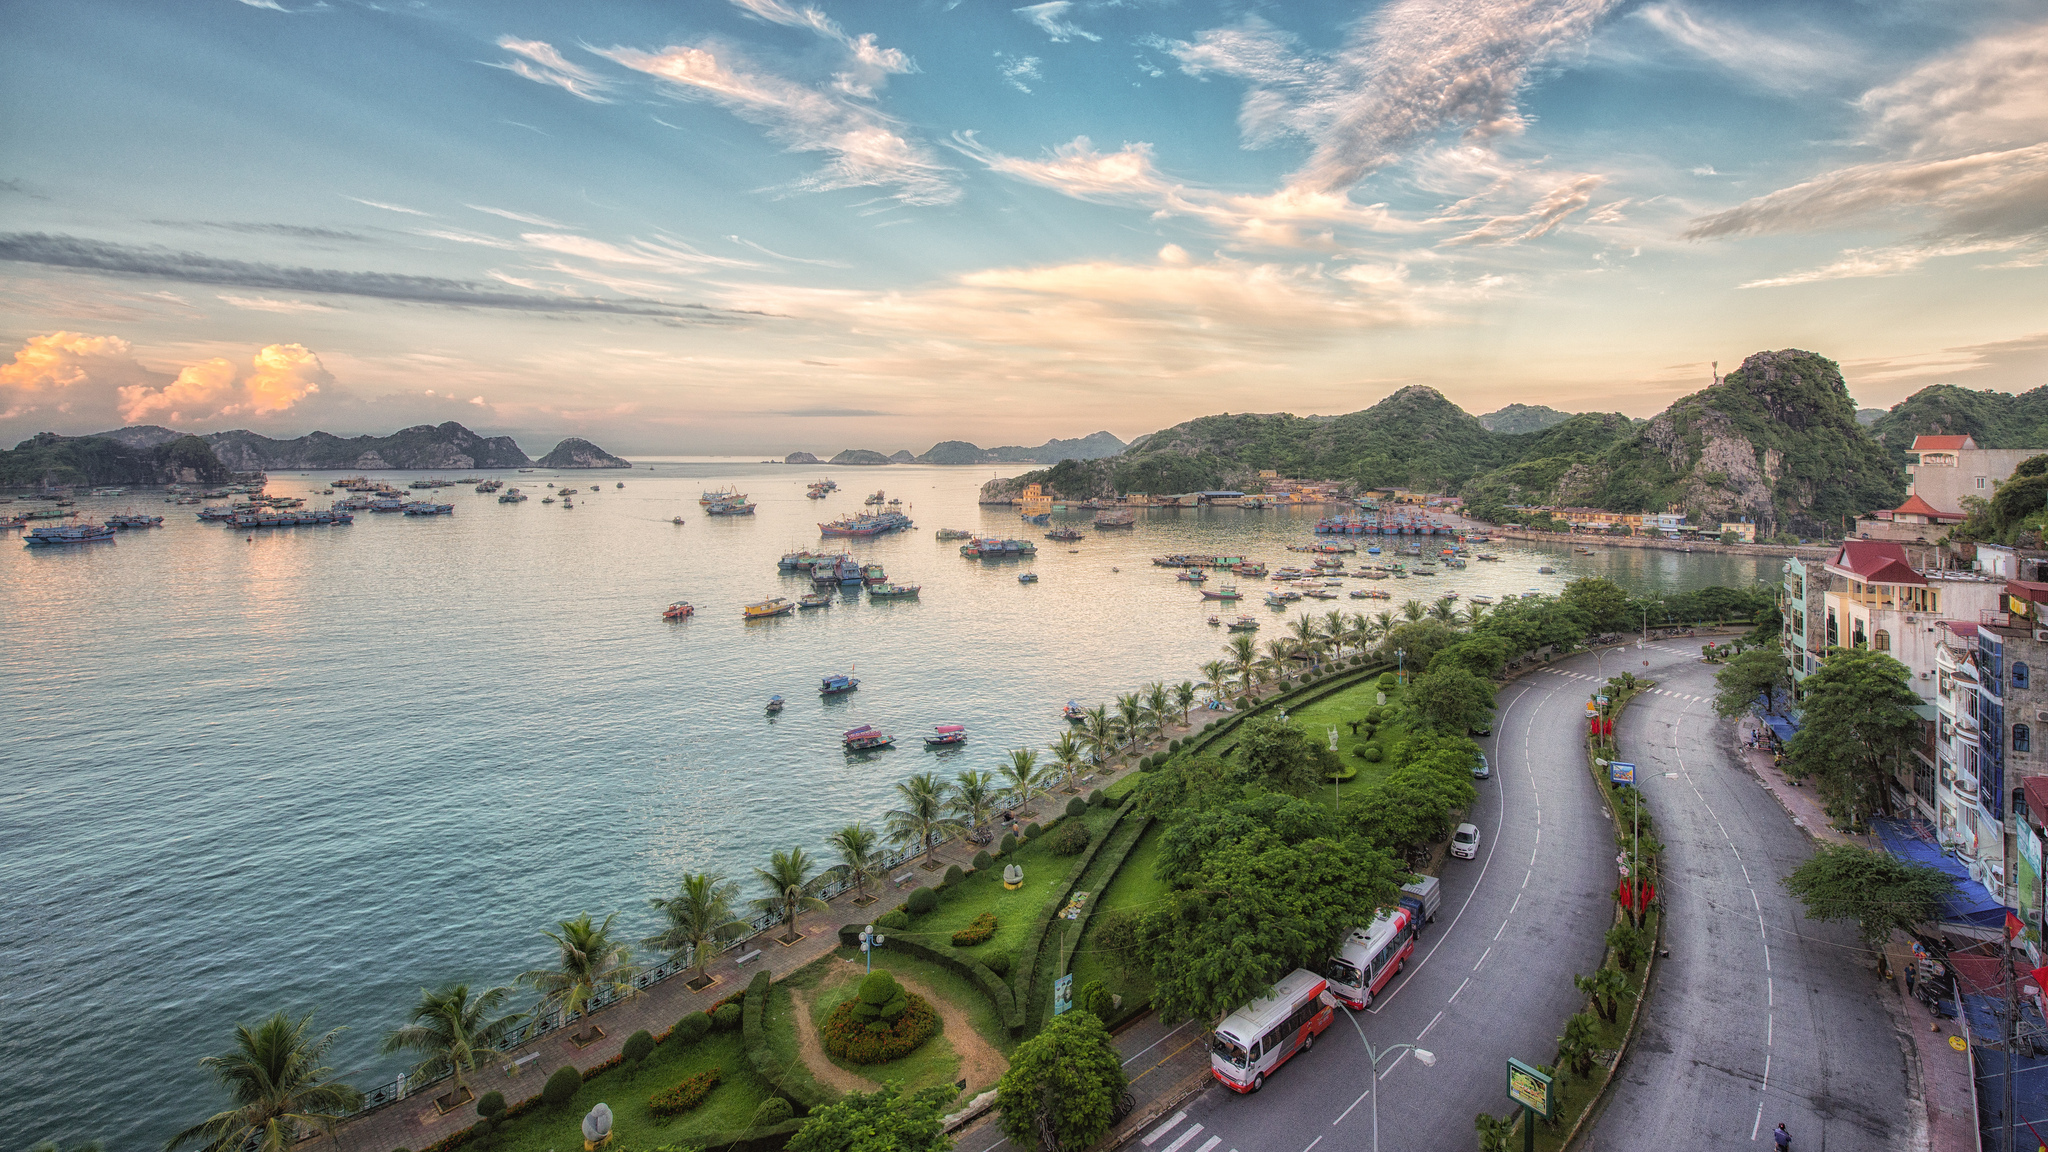 Things to Do in Vietnam | 19 Top Attractions and Activities